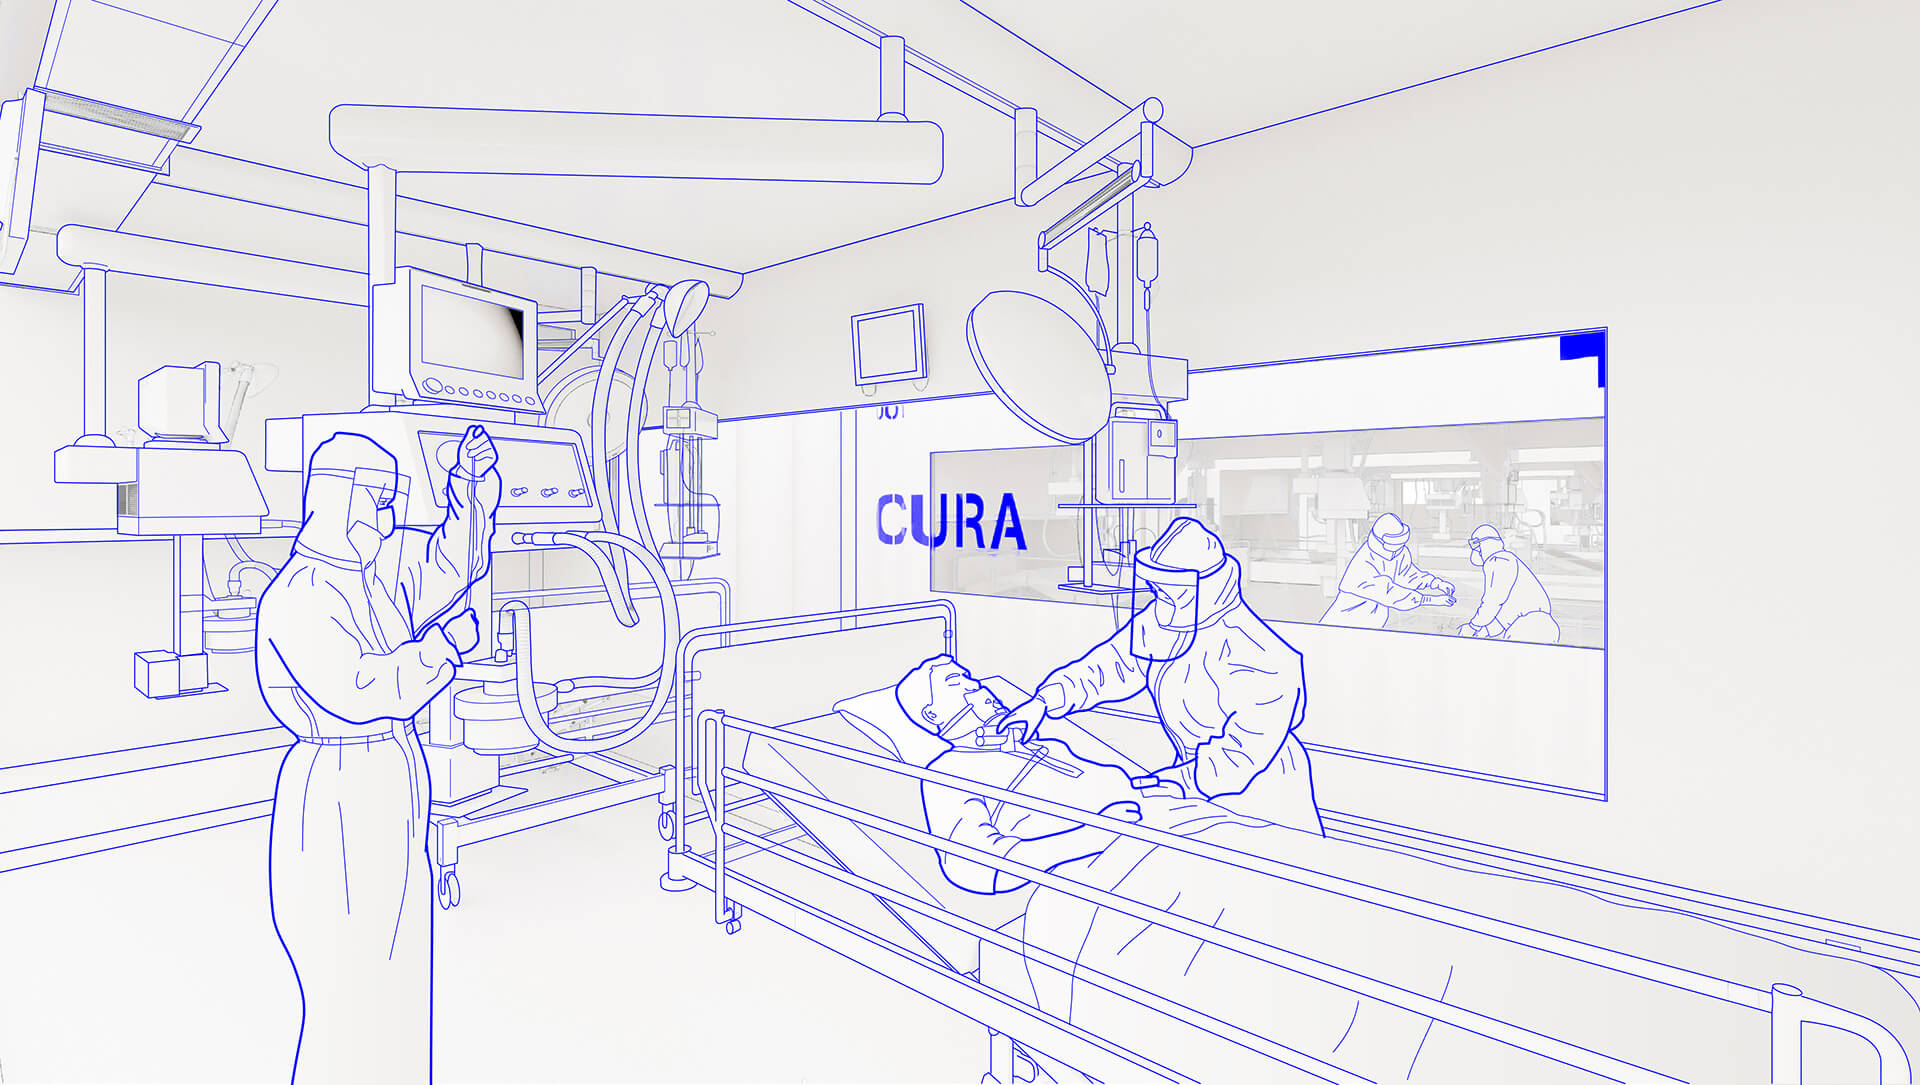 Responding to the shortage of ICU space in hospitals during the current COVID-19 outbreak, the plug-in biocontainment pods can be quickly deployed in cities around the world  | CURA | Carlo Ratti Associati | STIRworld